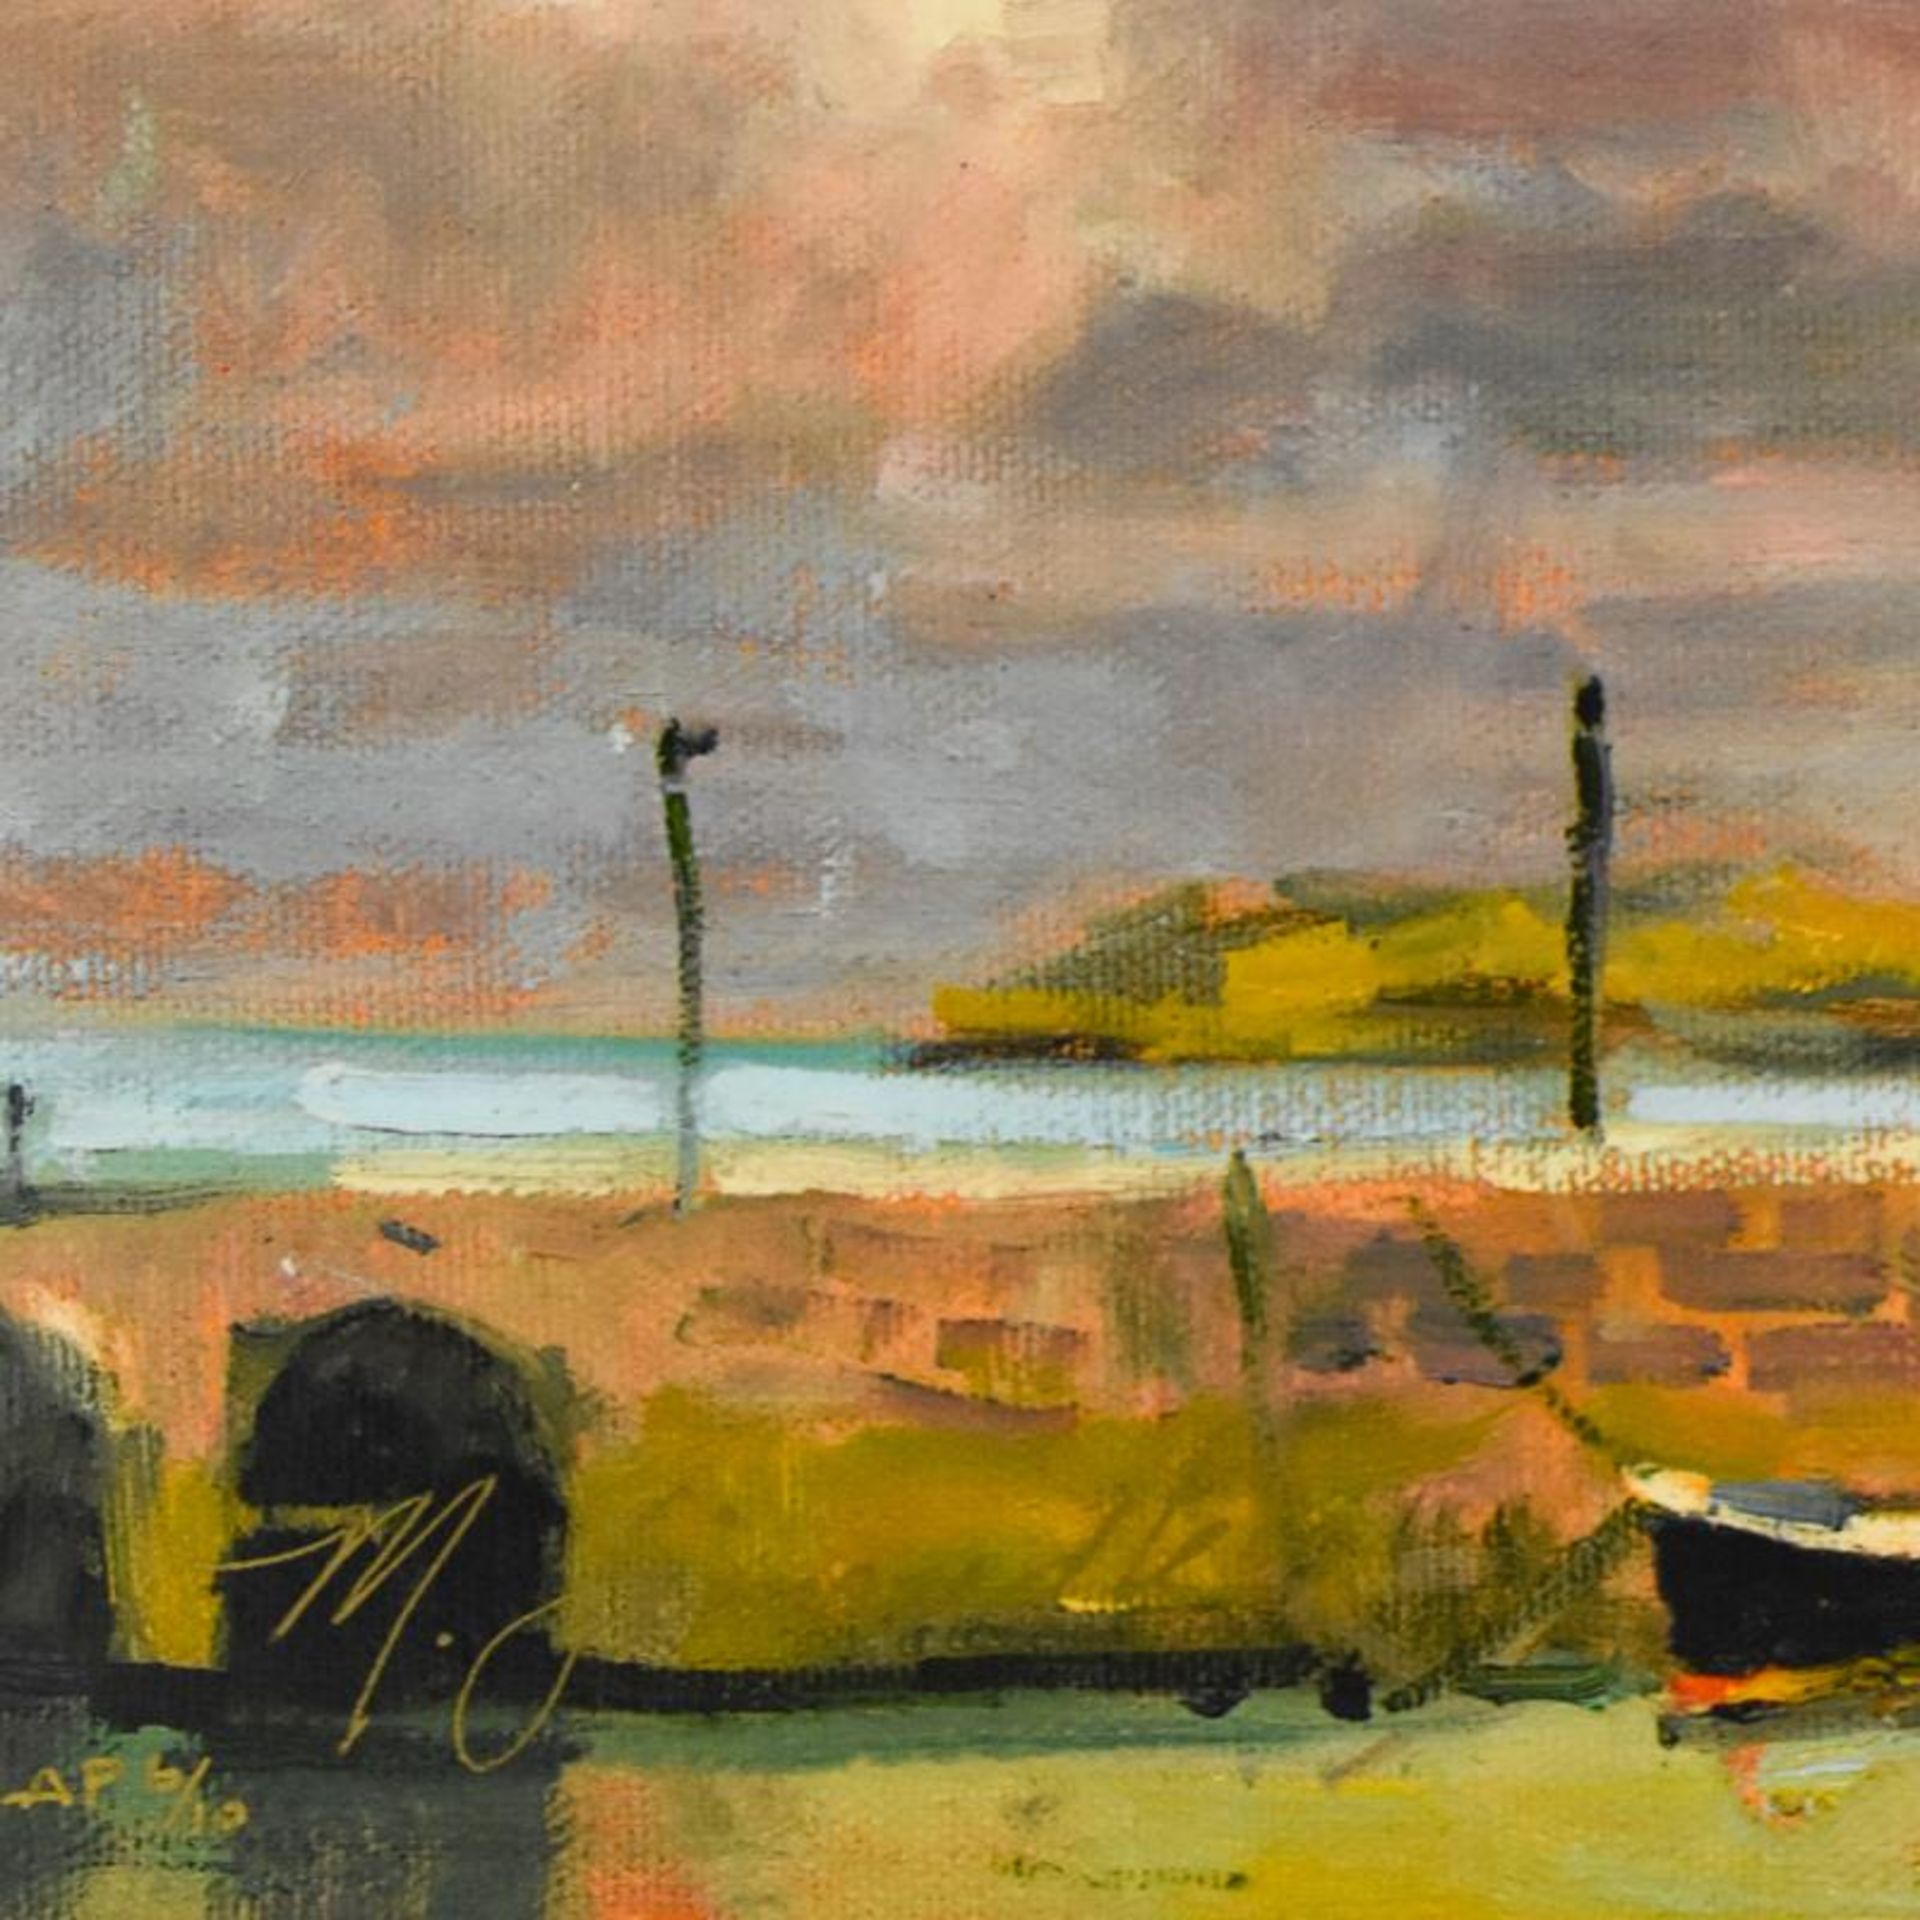 """Marilyn Simandle, """"St. Ives"""" Limited Edition on Canvas, Numbered and Hand Signed - Image 2 of 2"""